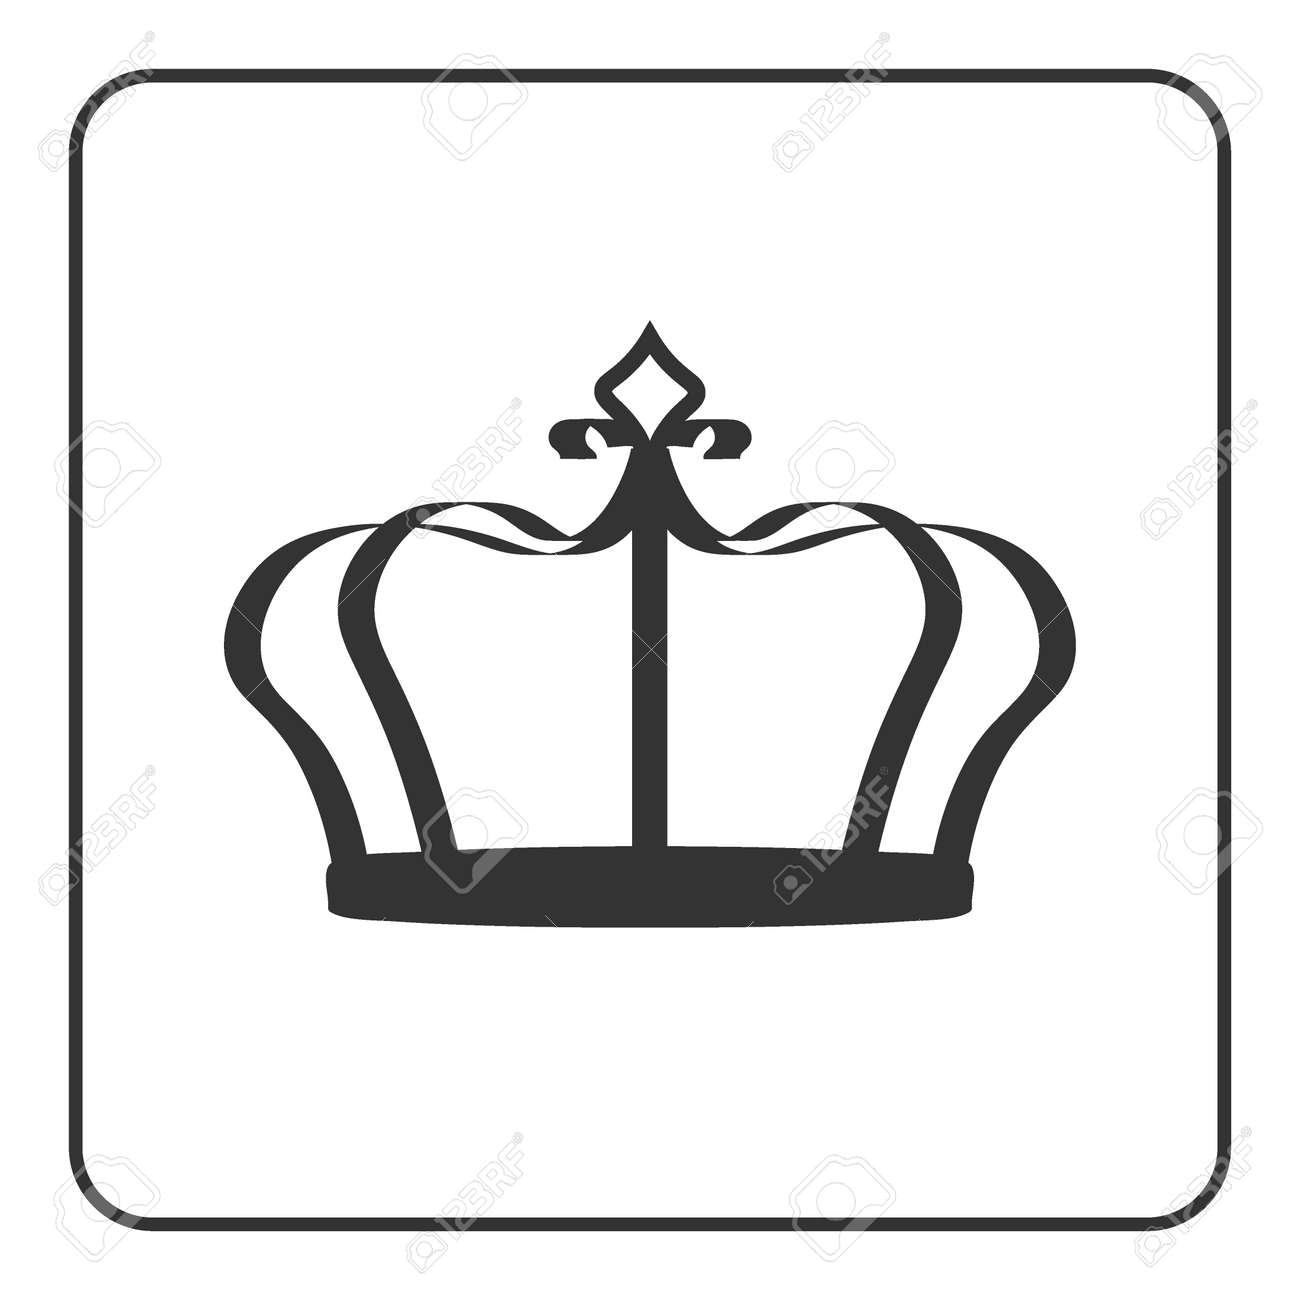 Crown Icon Symbol Of Royal Power And Authority Emperor Sign